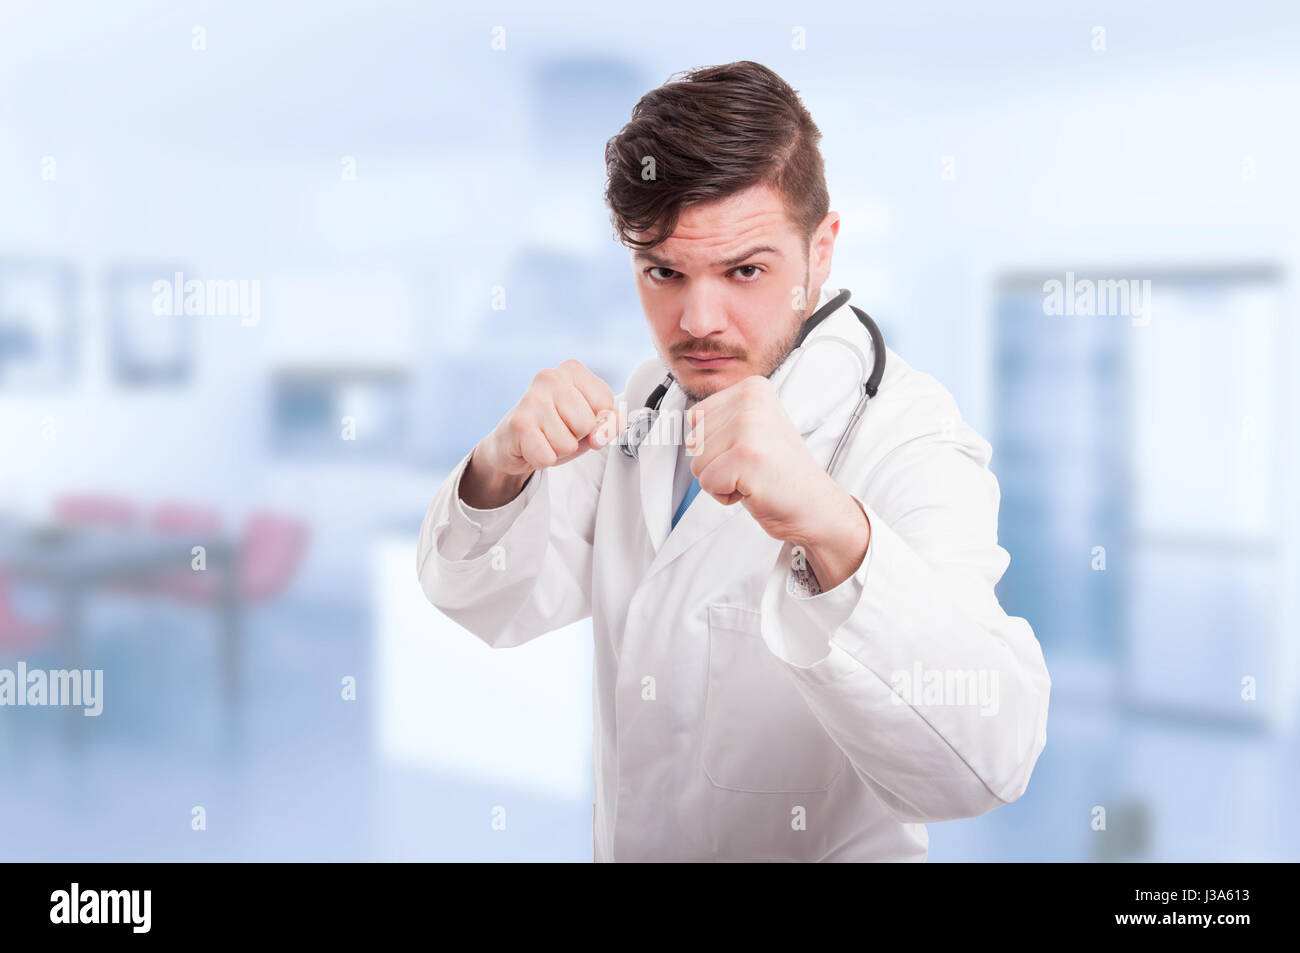 Doctor or medic acting violent and being ready to fight holding his fists up Stock Photo